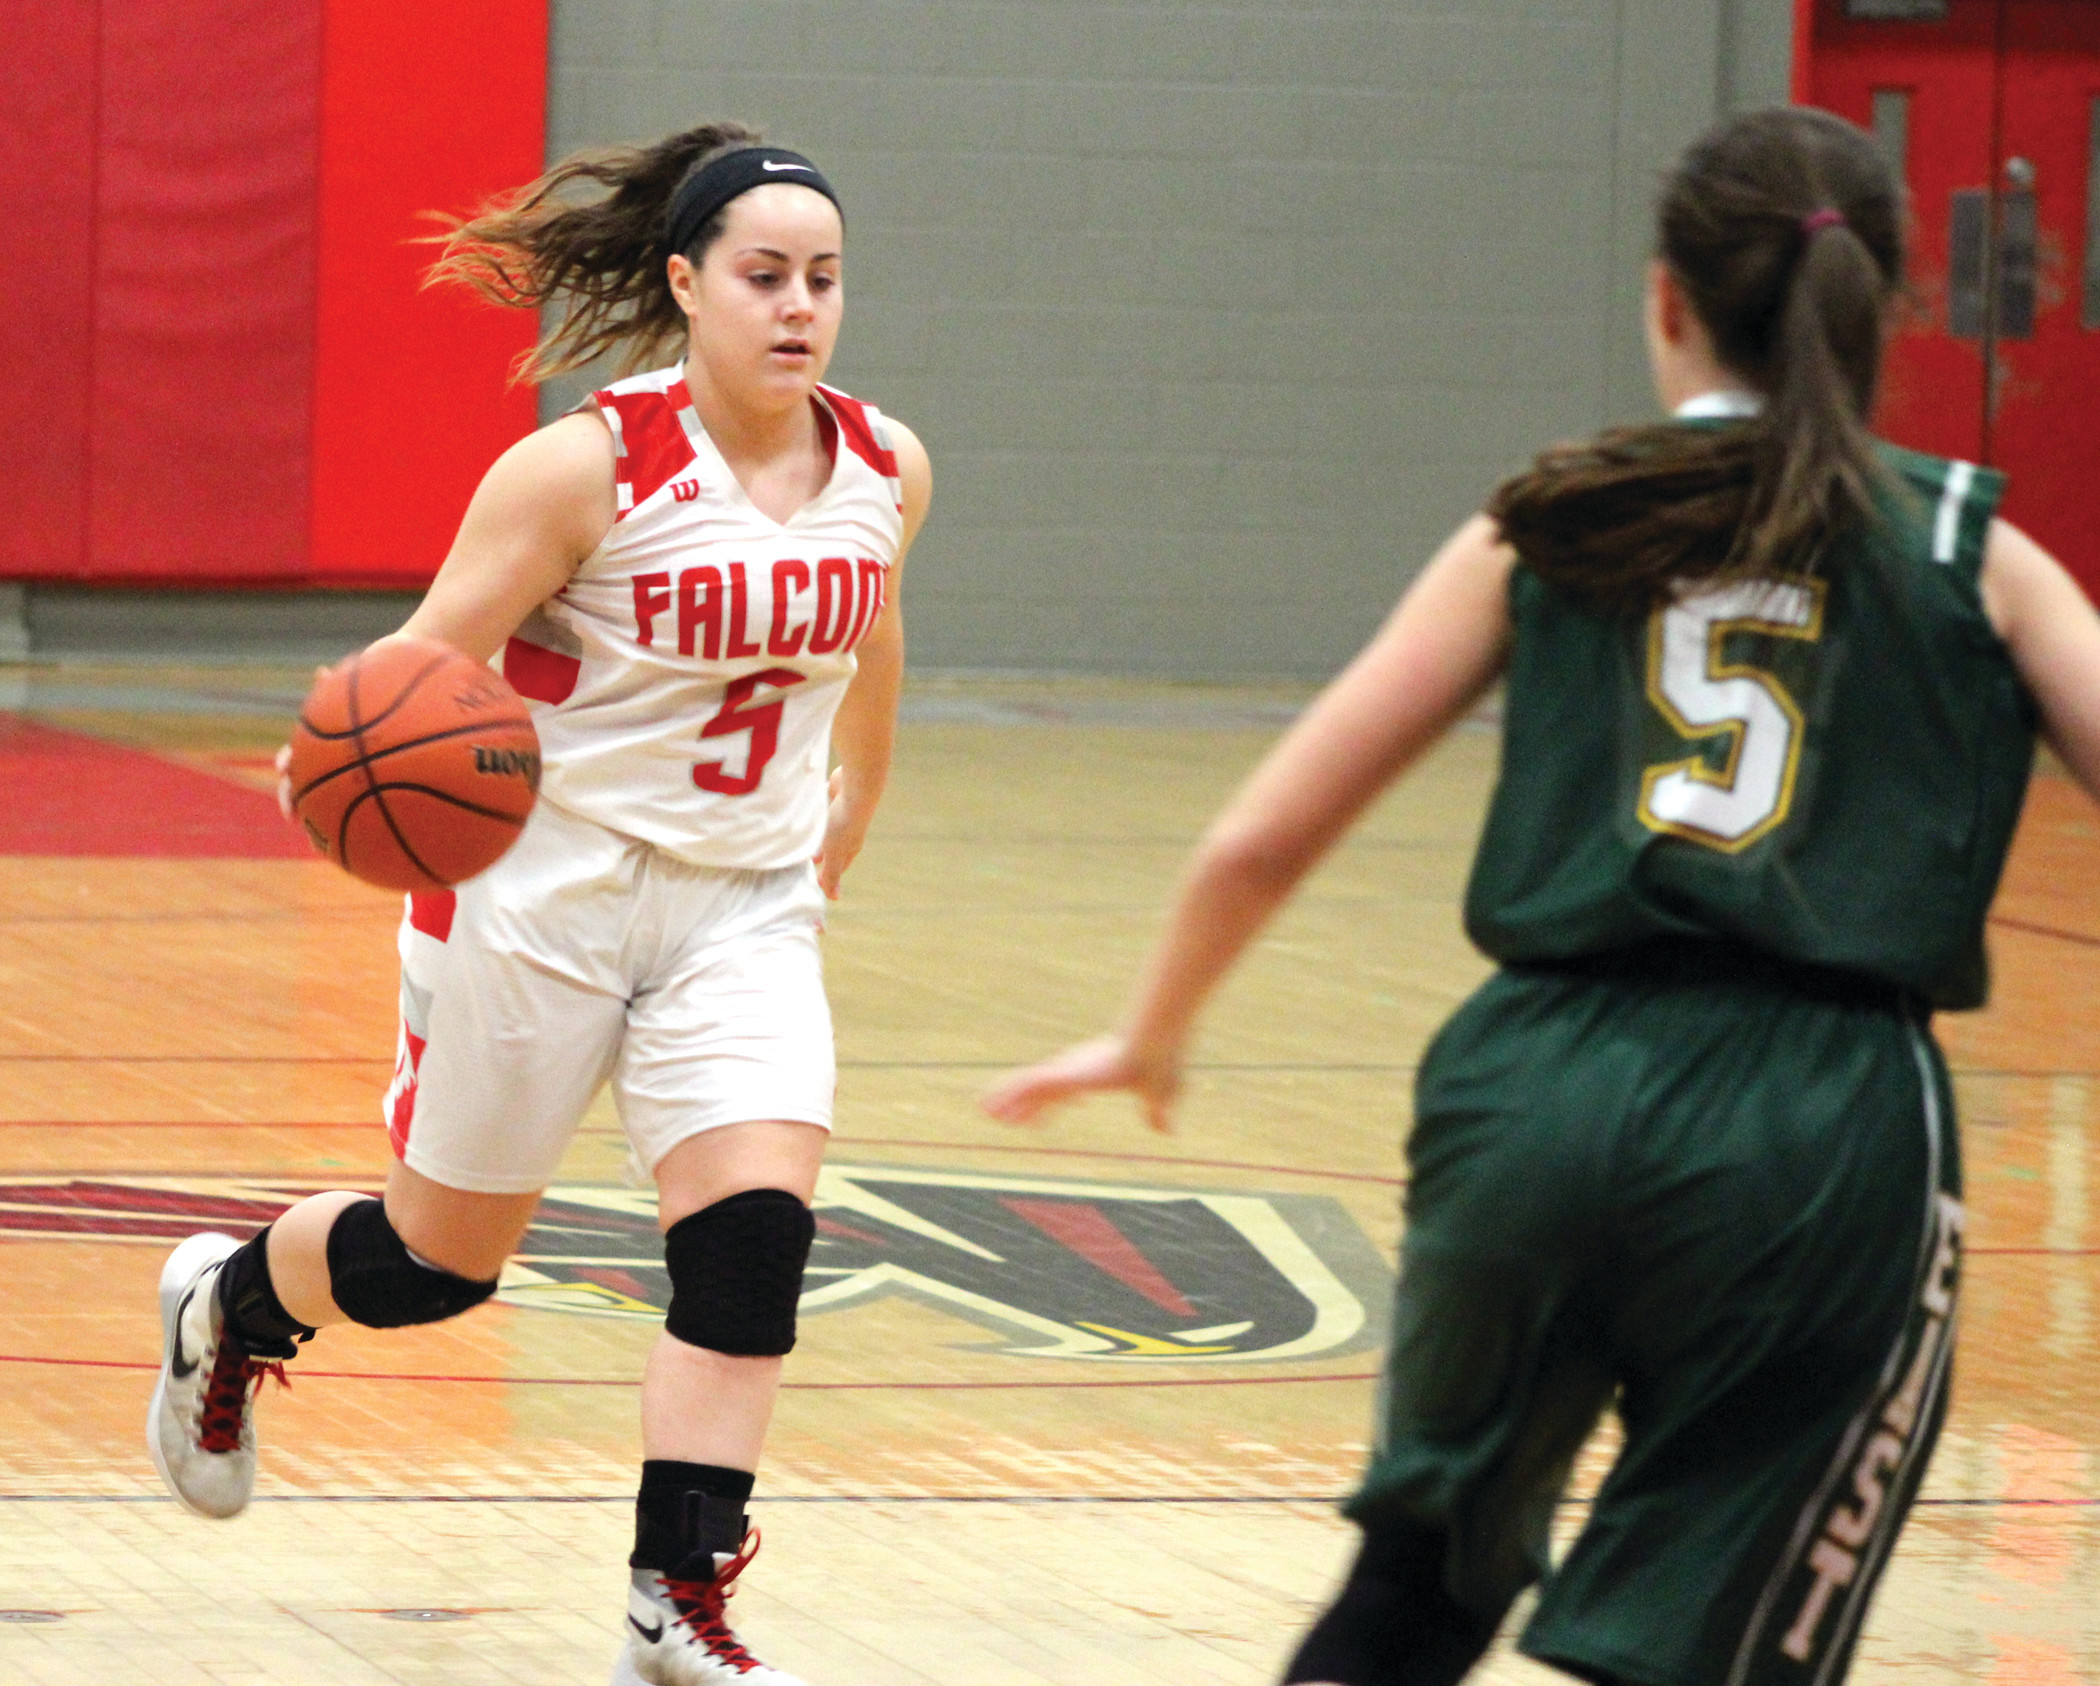 FLOOR GENERAL: West point guard Abby Souza brings the ball past halfcourt as East's Shayna Cousineau waits to defend.